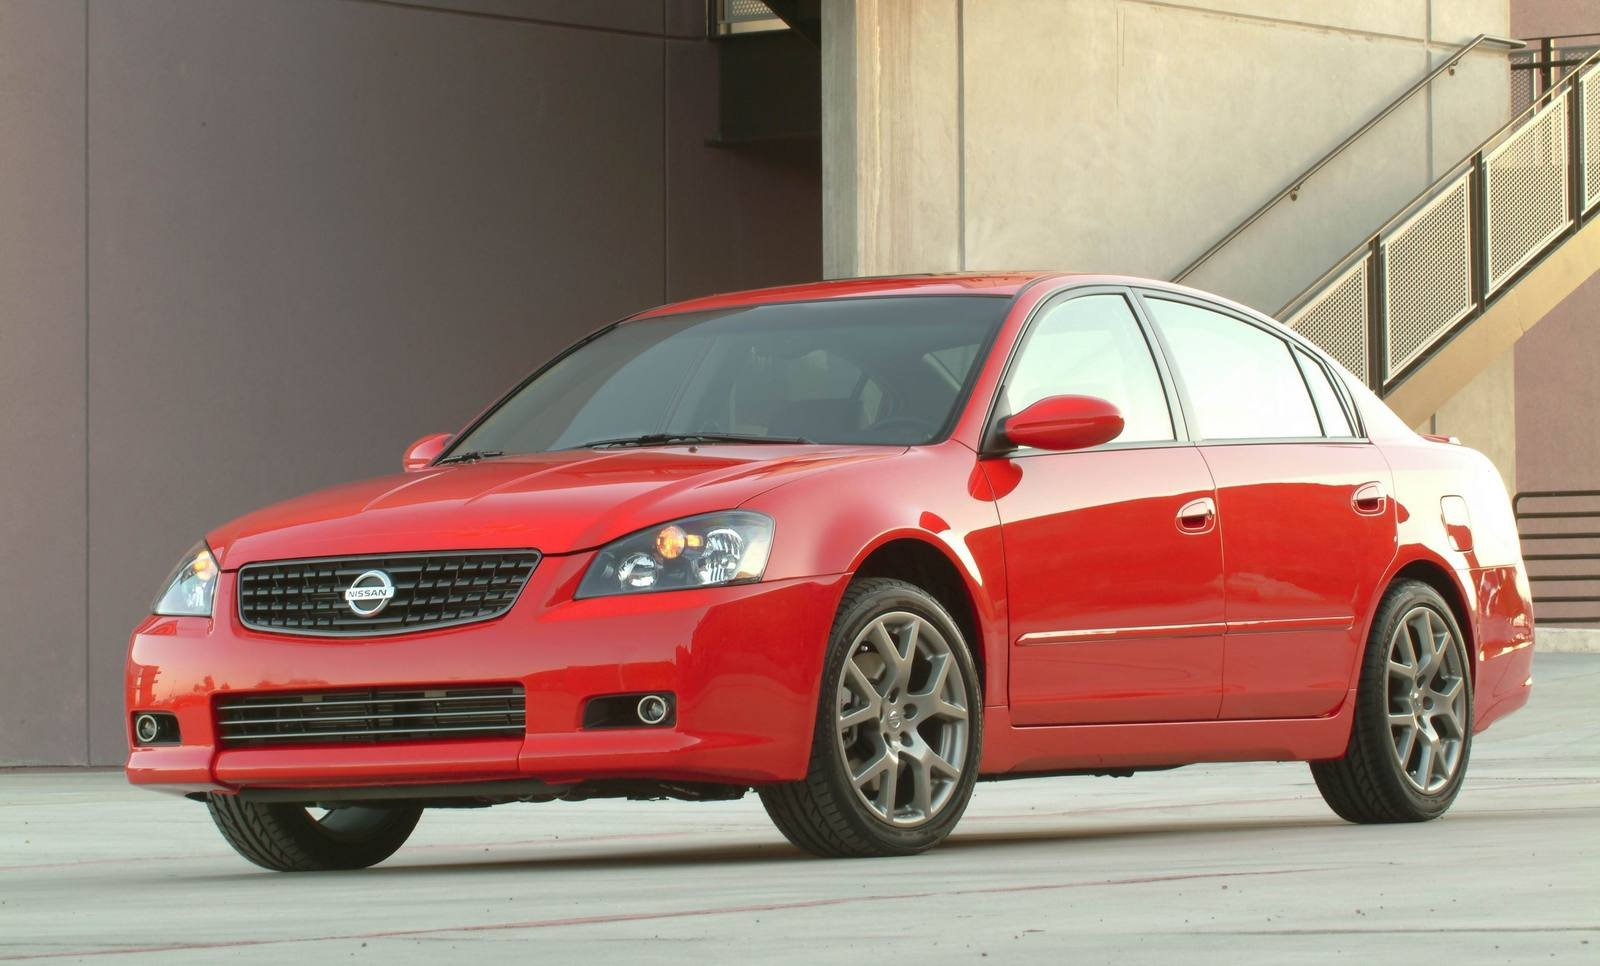 2006 nissan altima se r picture 41142 car review top speed. Black Bedroom Furniture Sets. Home Design Ideas